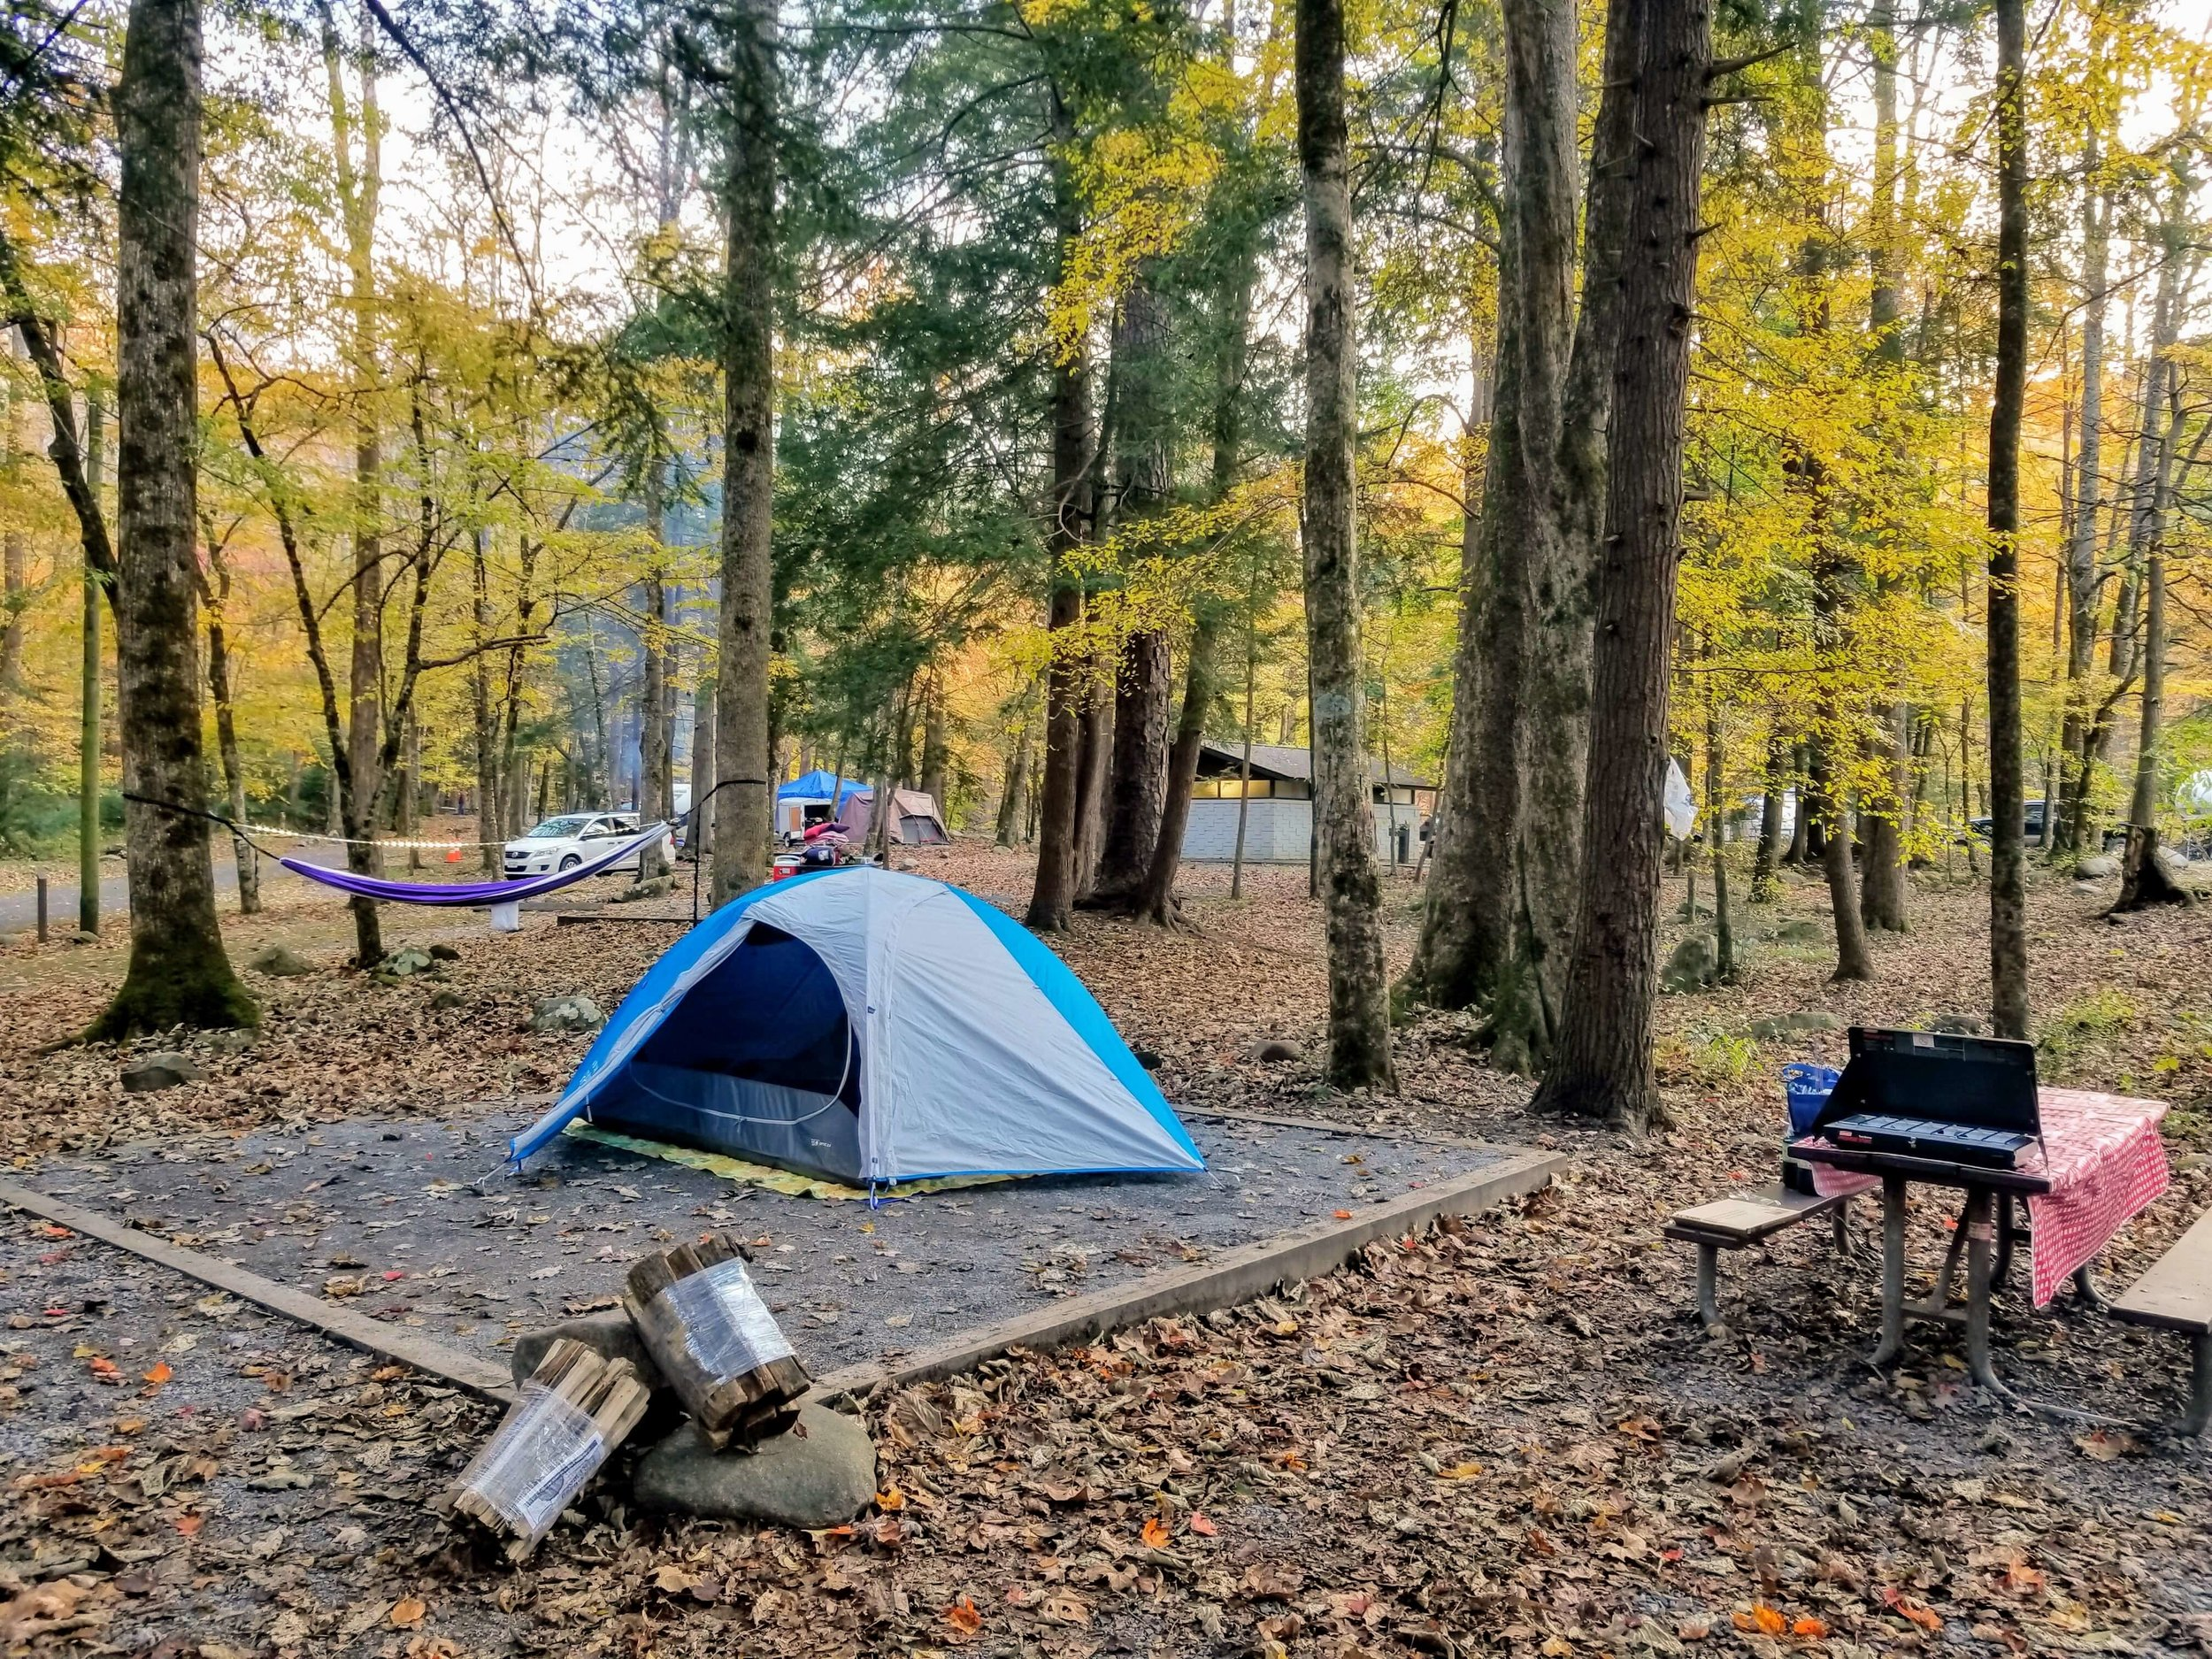 A spur of the moment trip to the Great Smoky Mountains. It was the last warm weekend in the fall so we decided to leave Saturday afternoon and were set up by Saturday evening. We may have forgotten some things (camp chairs, firestarter logs) but we had a fantastic time anyway.